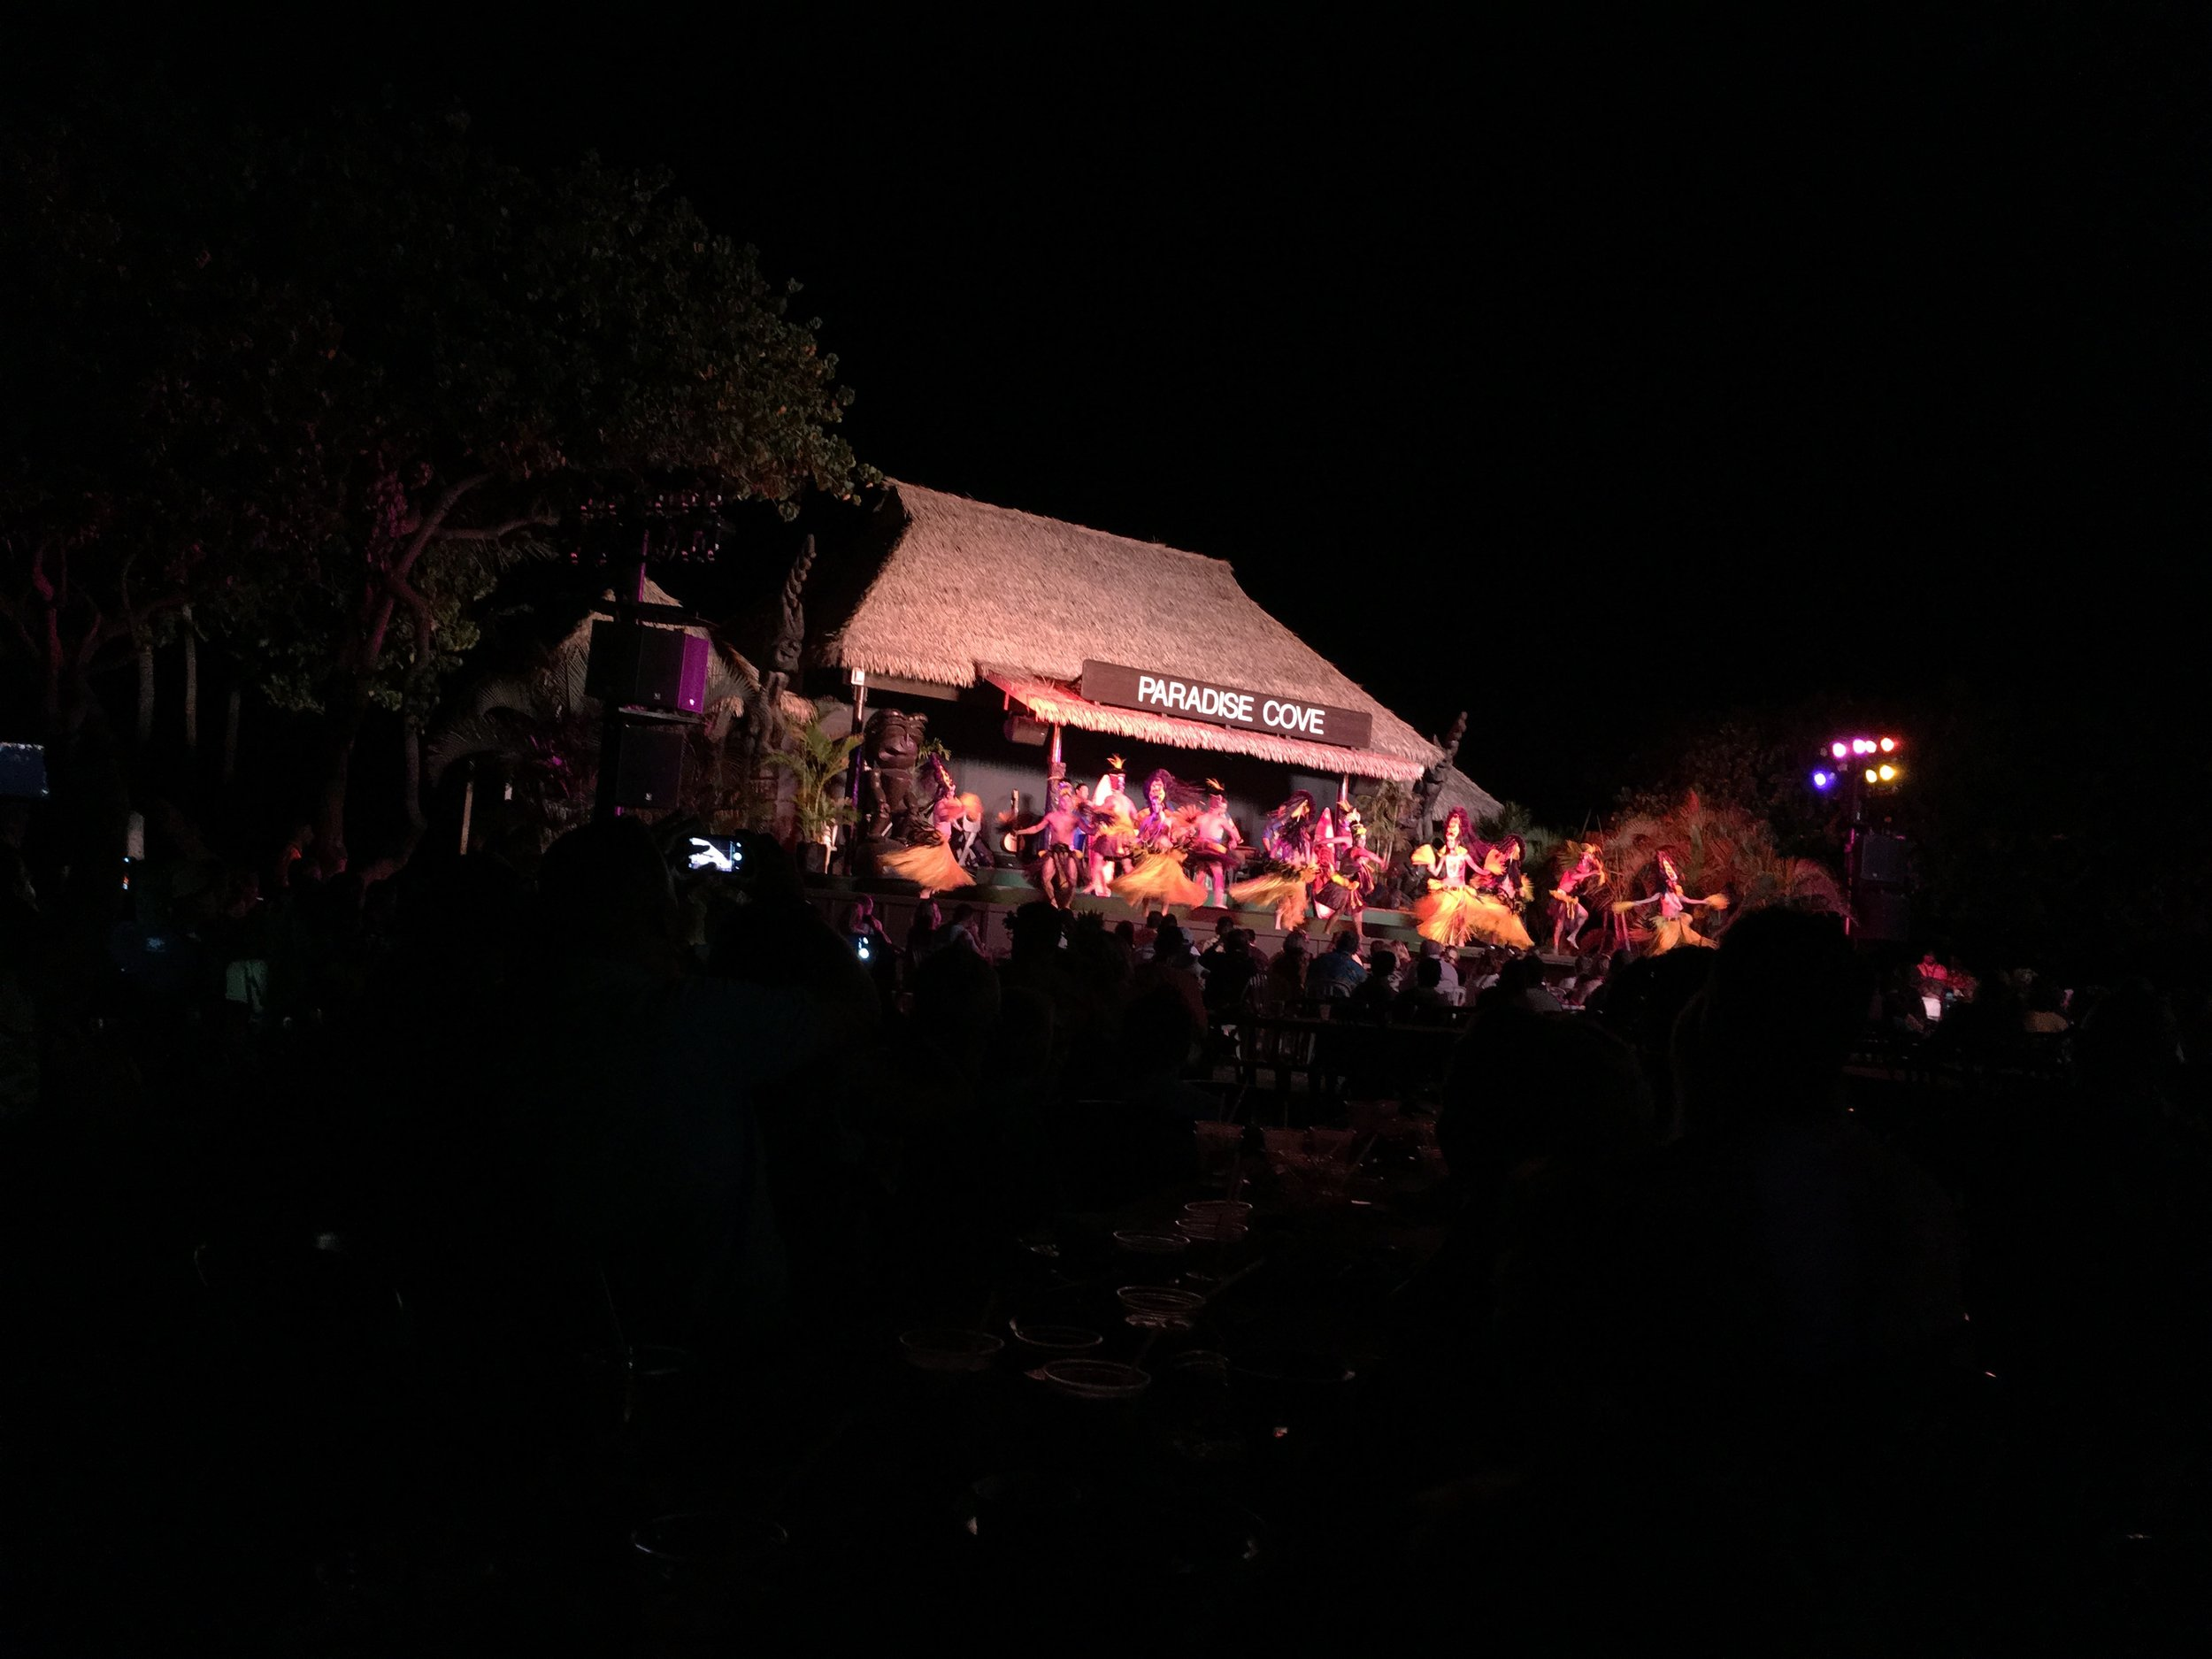 We went to the Luau next door at Paradise Cove